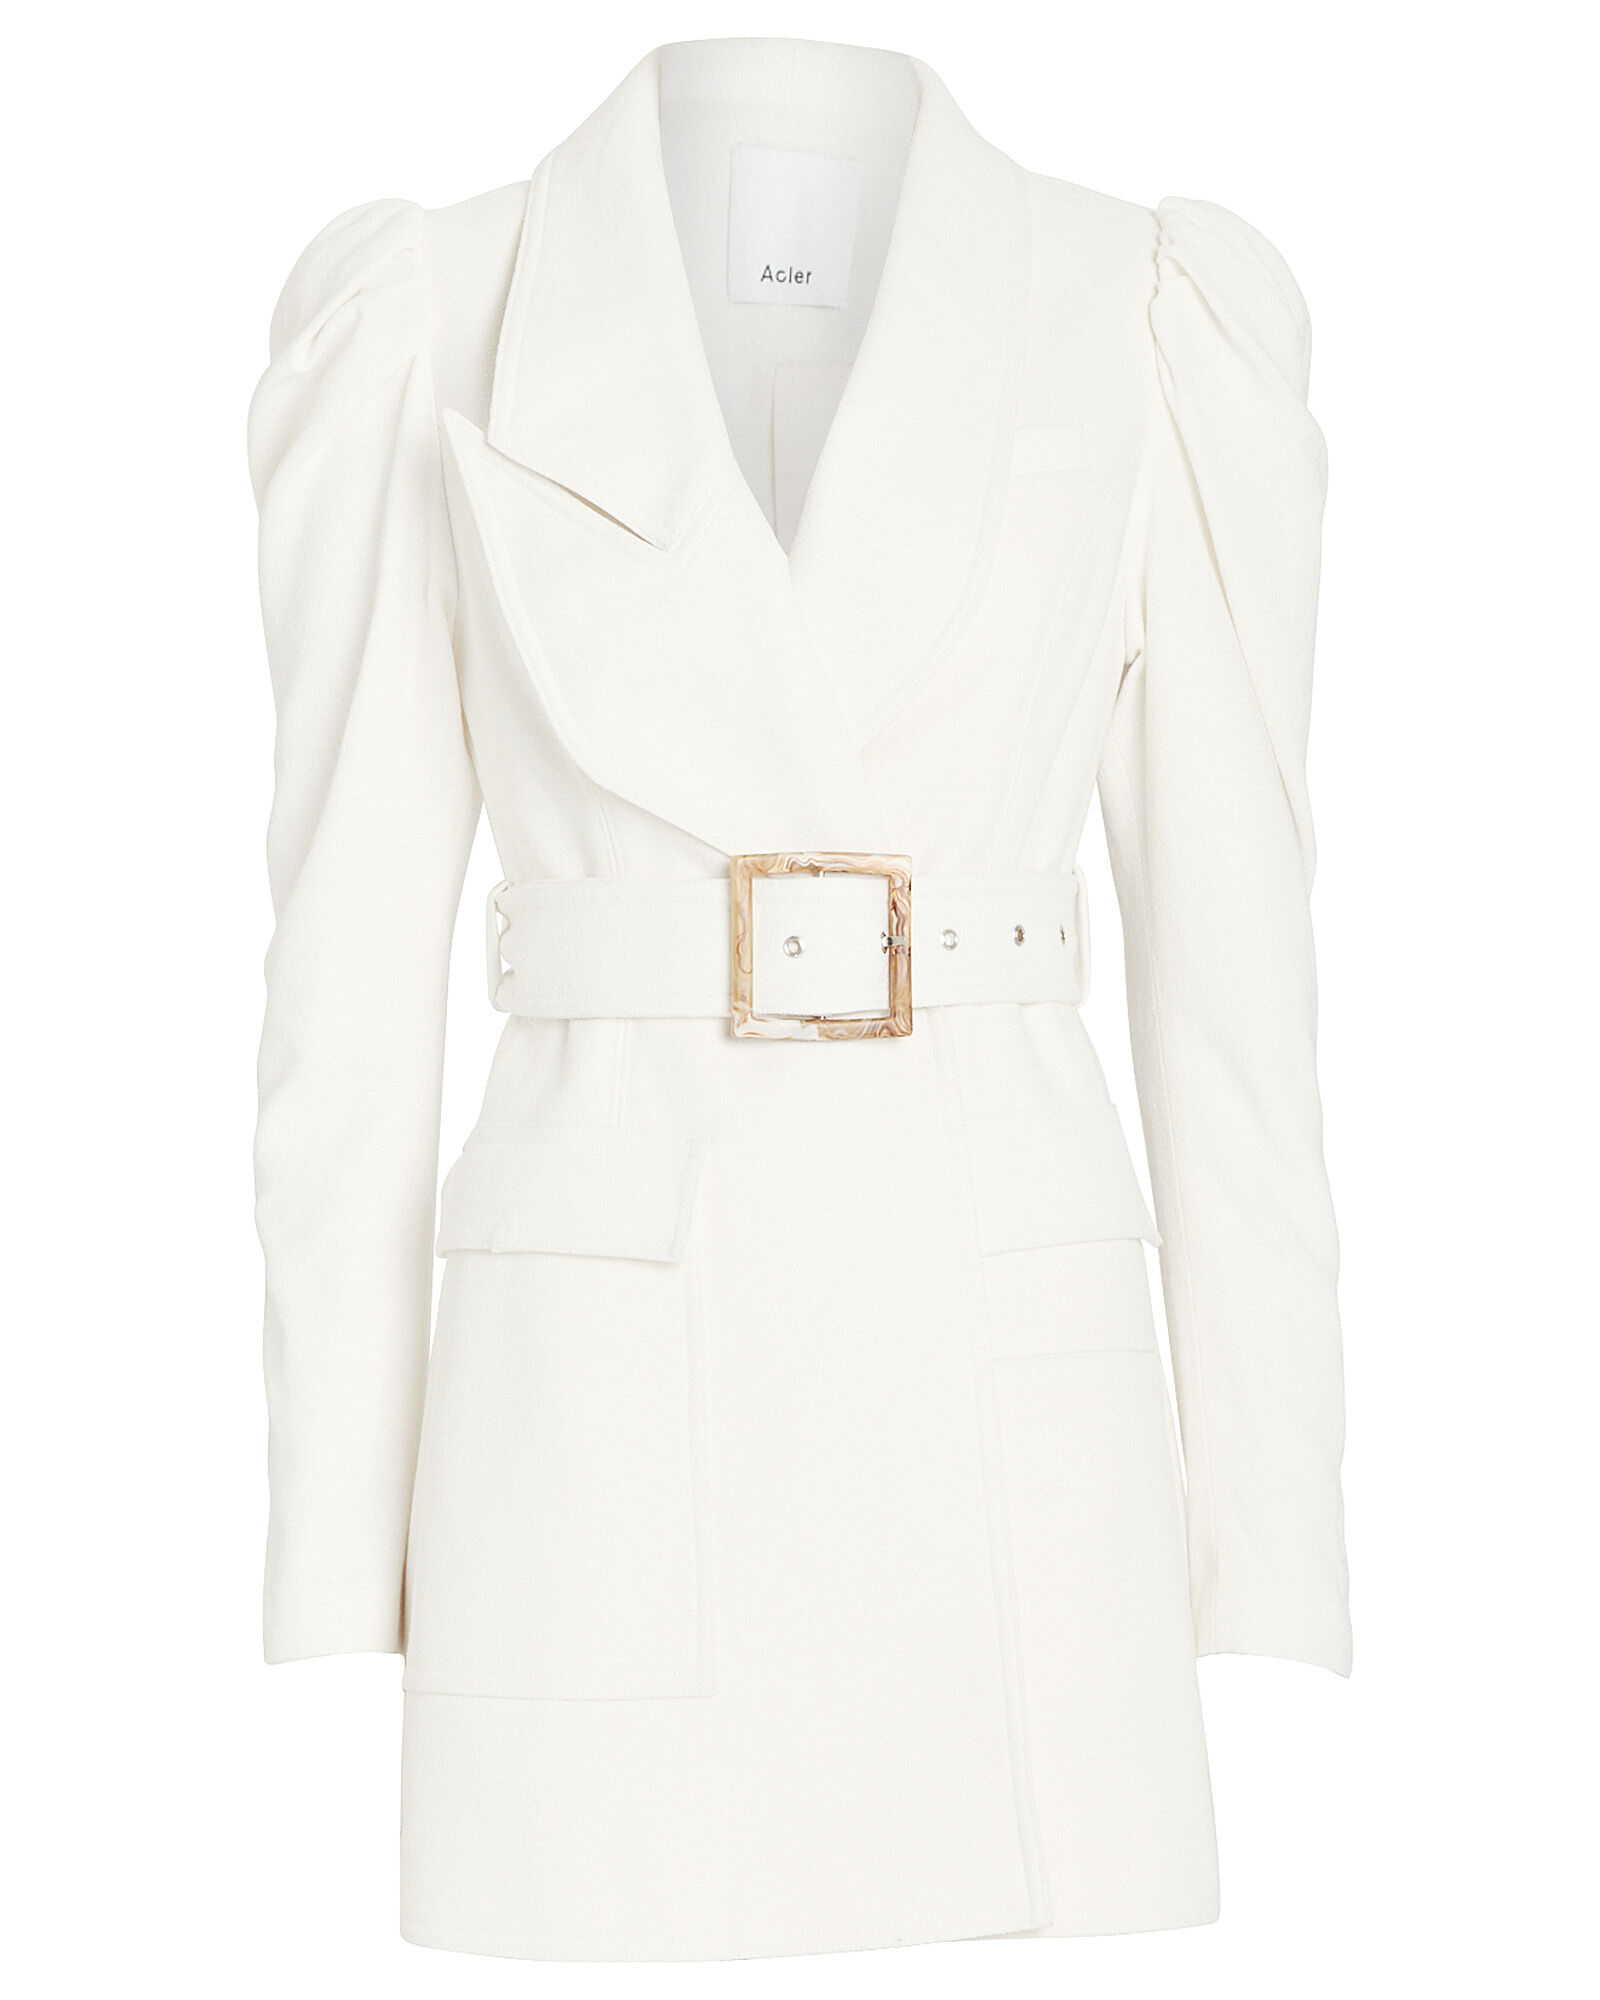 Alameda Blazer Dress, IVORY, hi-res